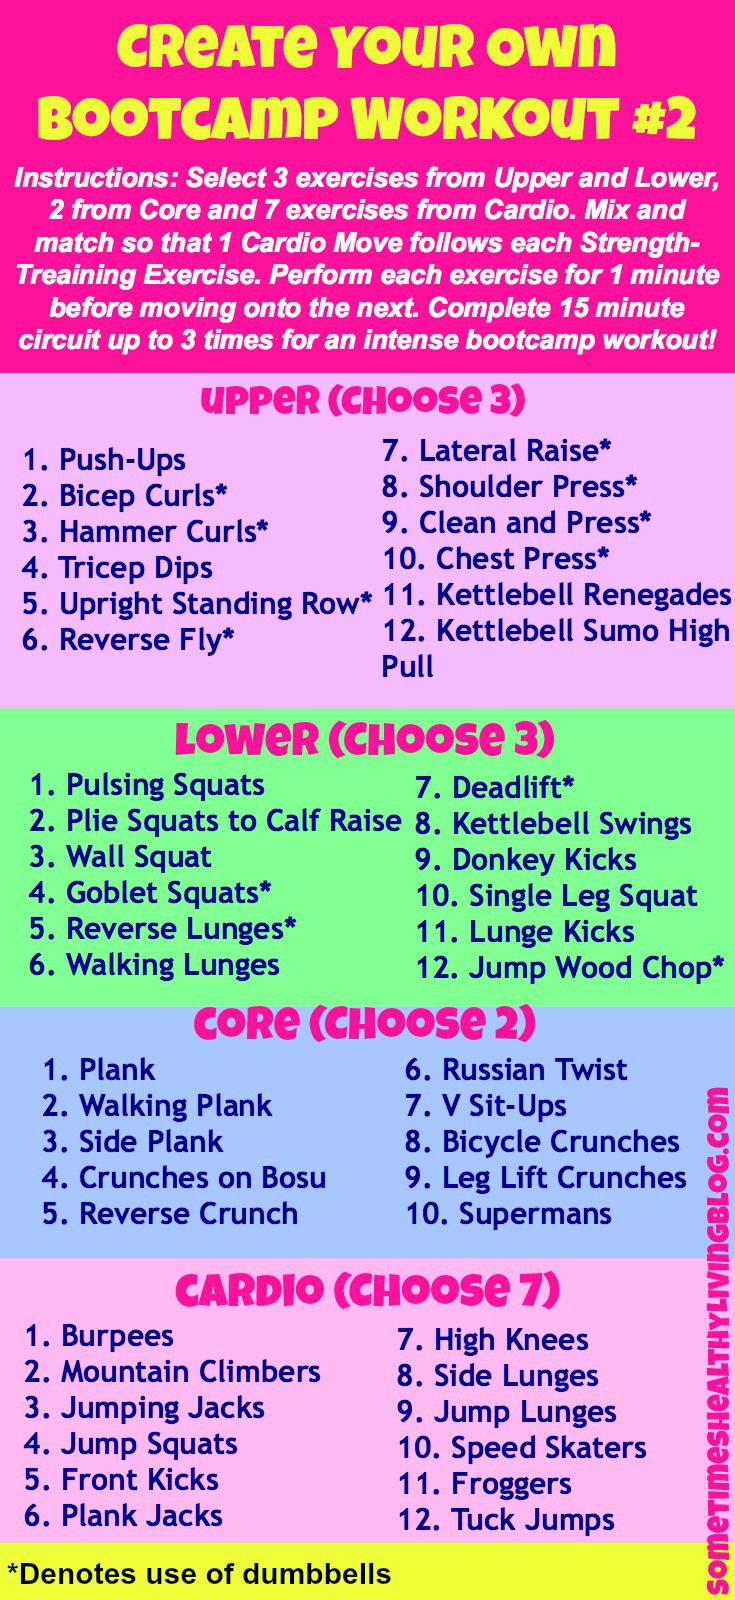 Mix it up! Here's a great list of exercises to create your own bootcamp. Variety is the spice of life!